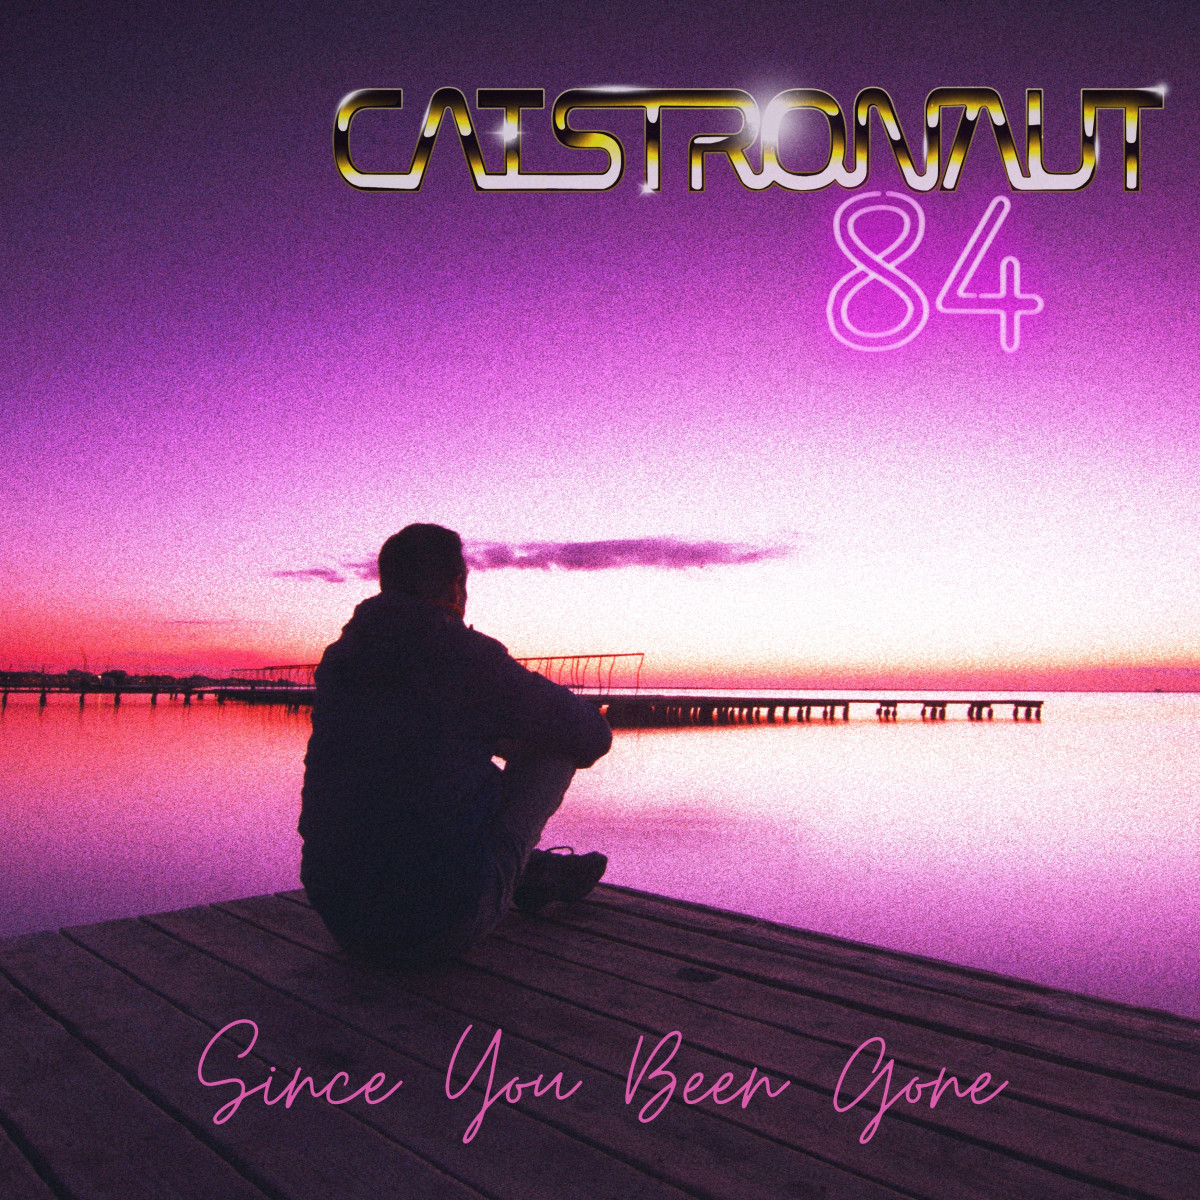 synth-single-review-since-you-been-gone-by-catstronaut84-feat-jamie-eldridge